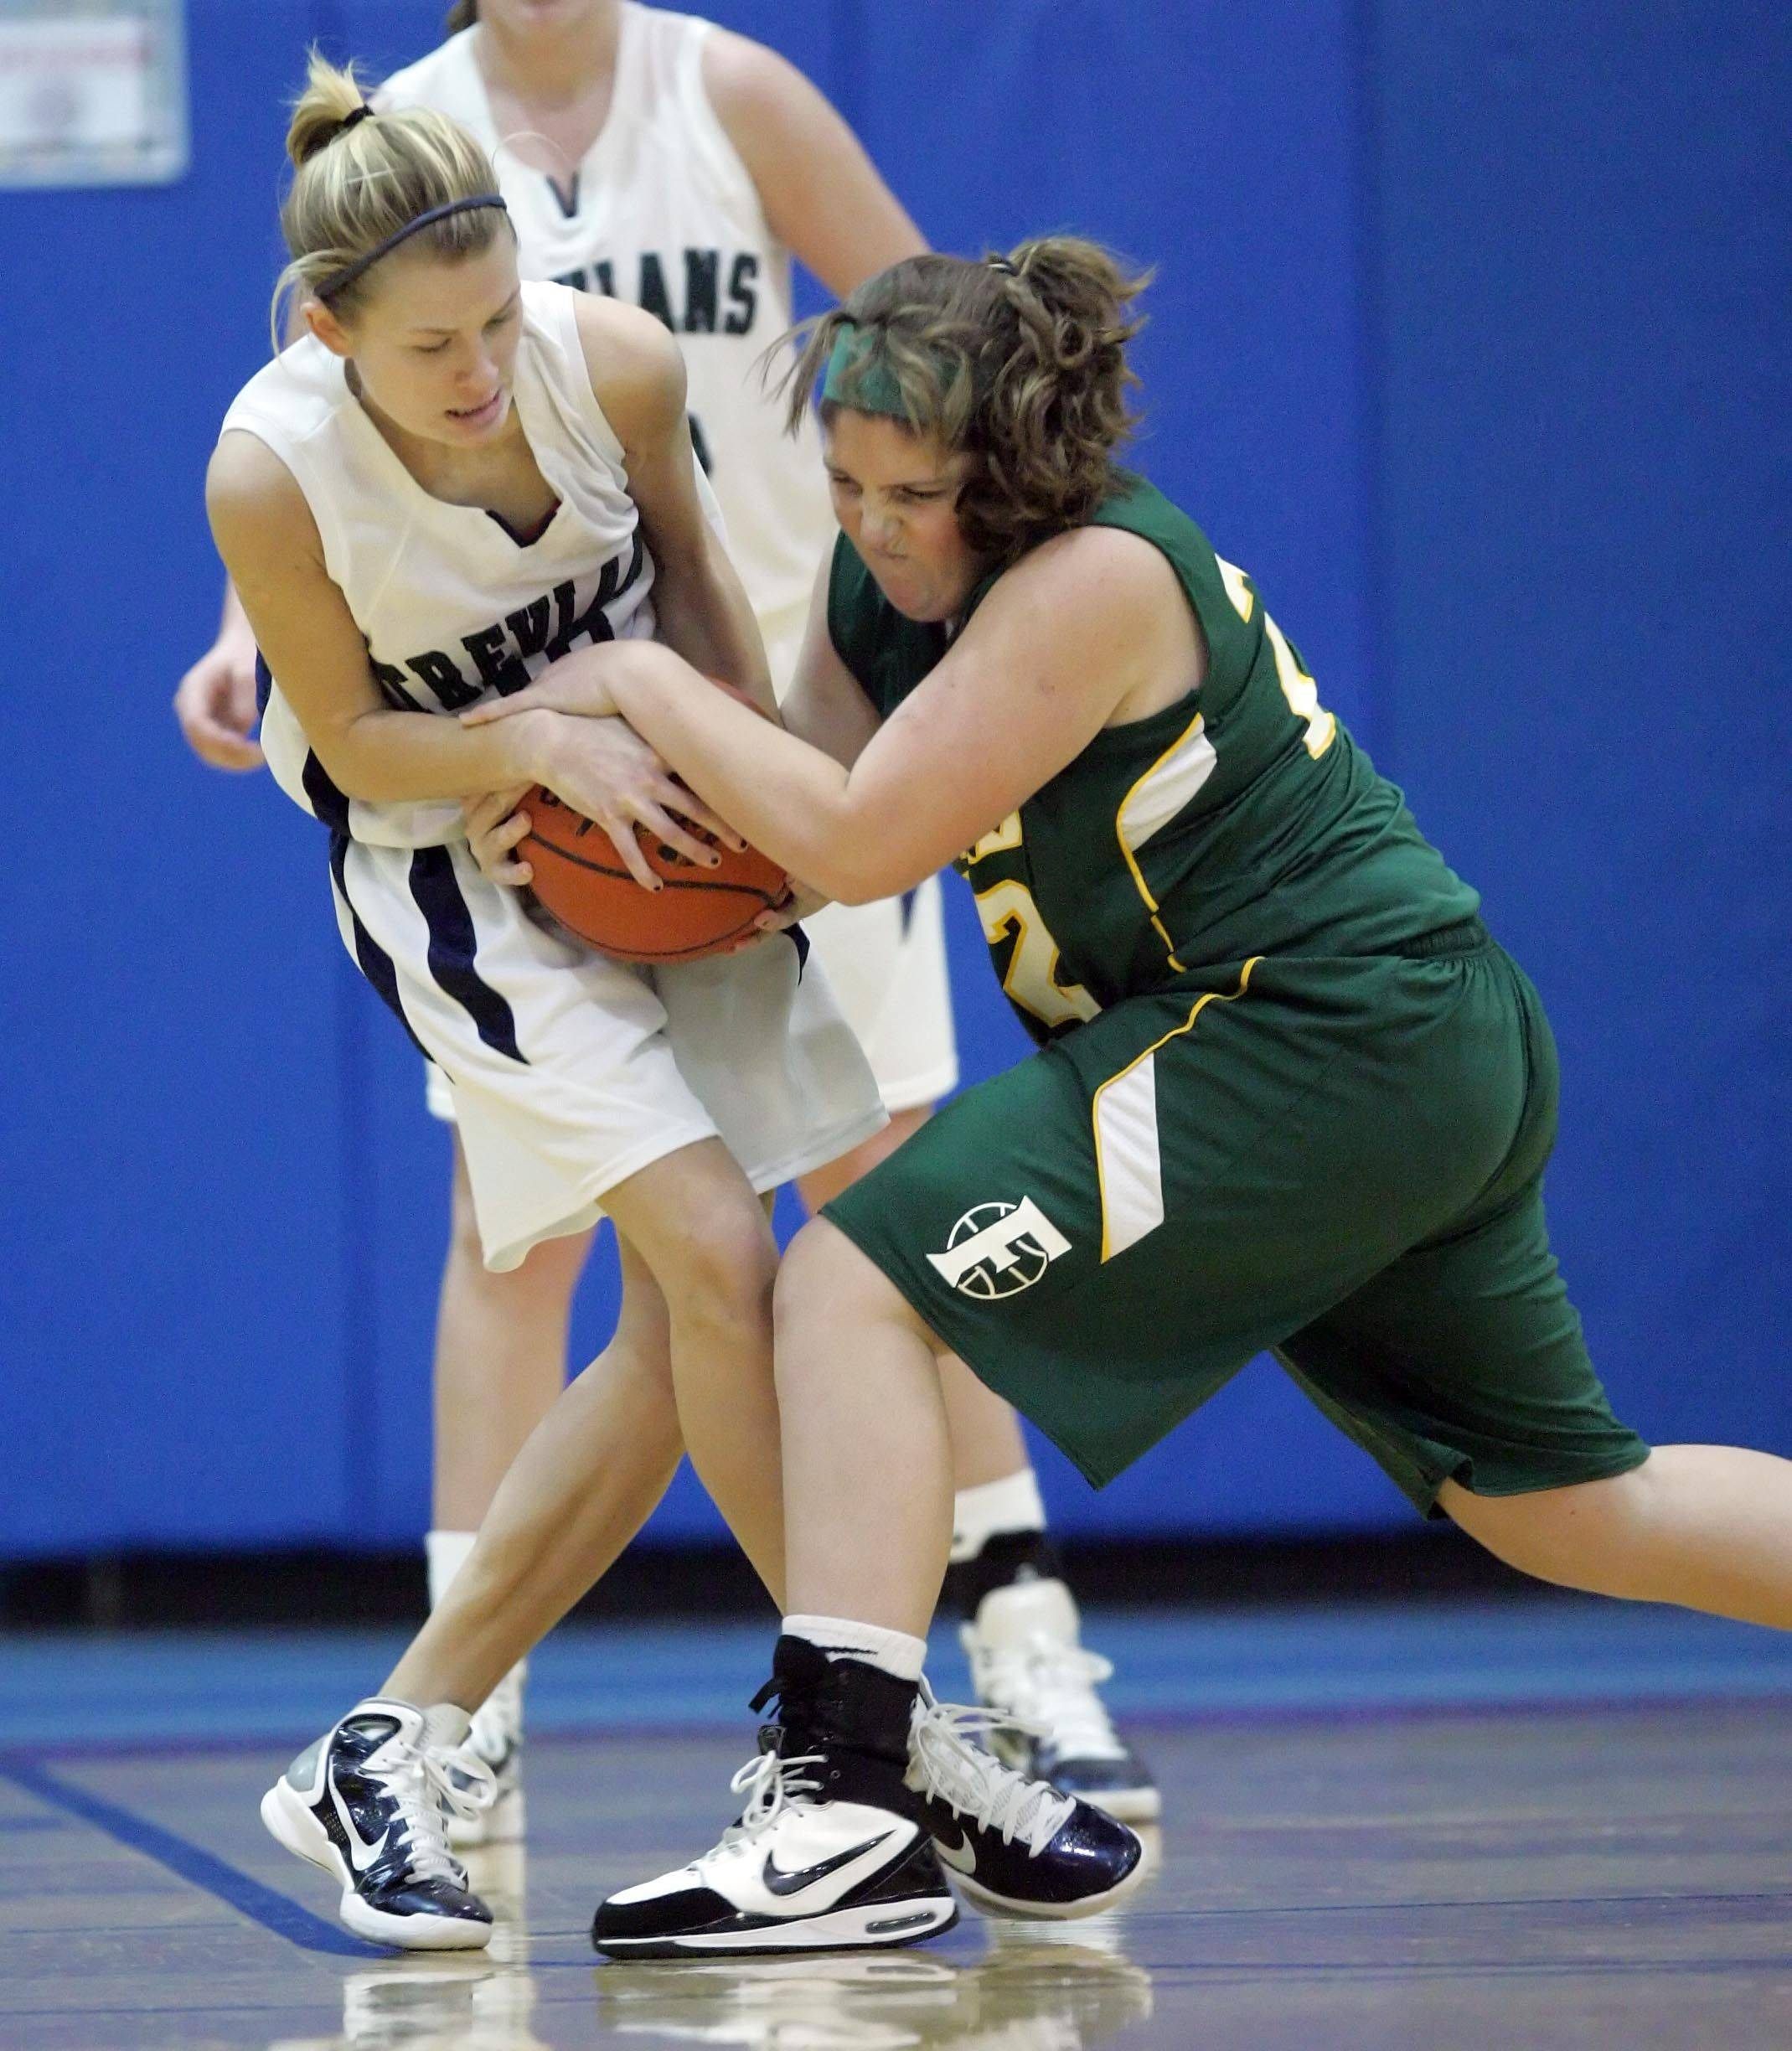 New Treir's Meg Rosinski, 10, wrestles with Fremd's Megan Horn, 22, during Fremd vs New Trier in the Third place game of the Charger Classic girls basketball tournament at Dundee-Crown High School in Carpentersville Thursday, December 30, 2010.